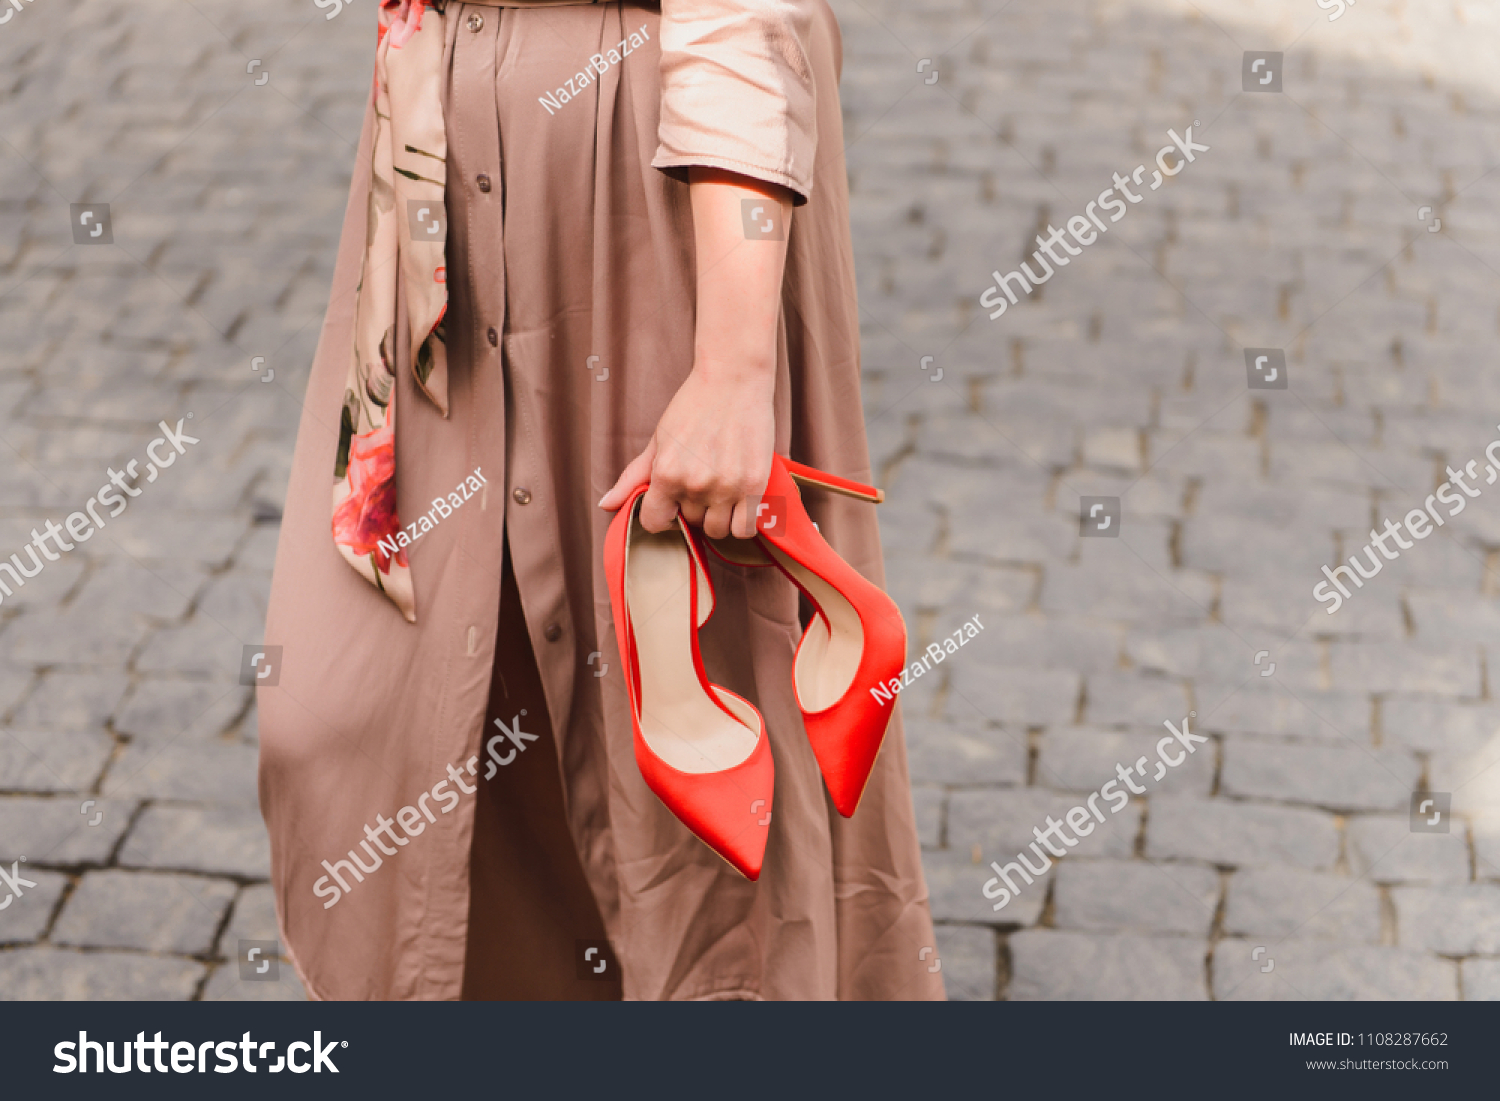 Elegant red high heels shoes in woman hands. Girl wearing beige trench coat standing on a stony pavement, holding her trendy, fashion footwear in hands #1108287662